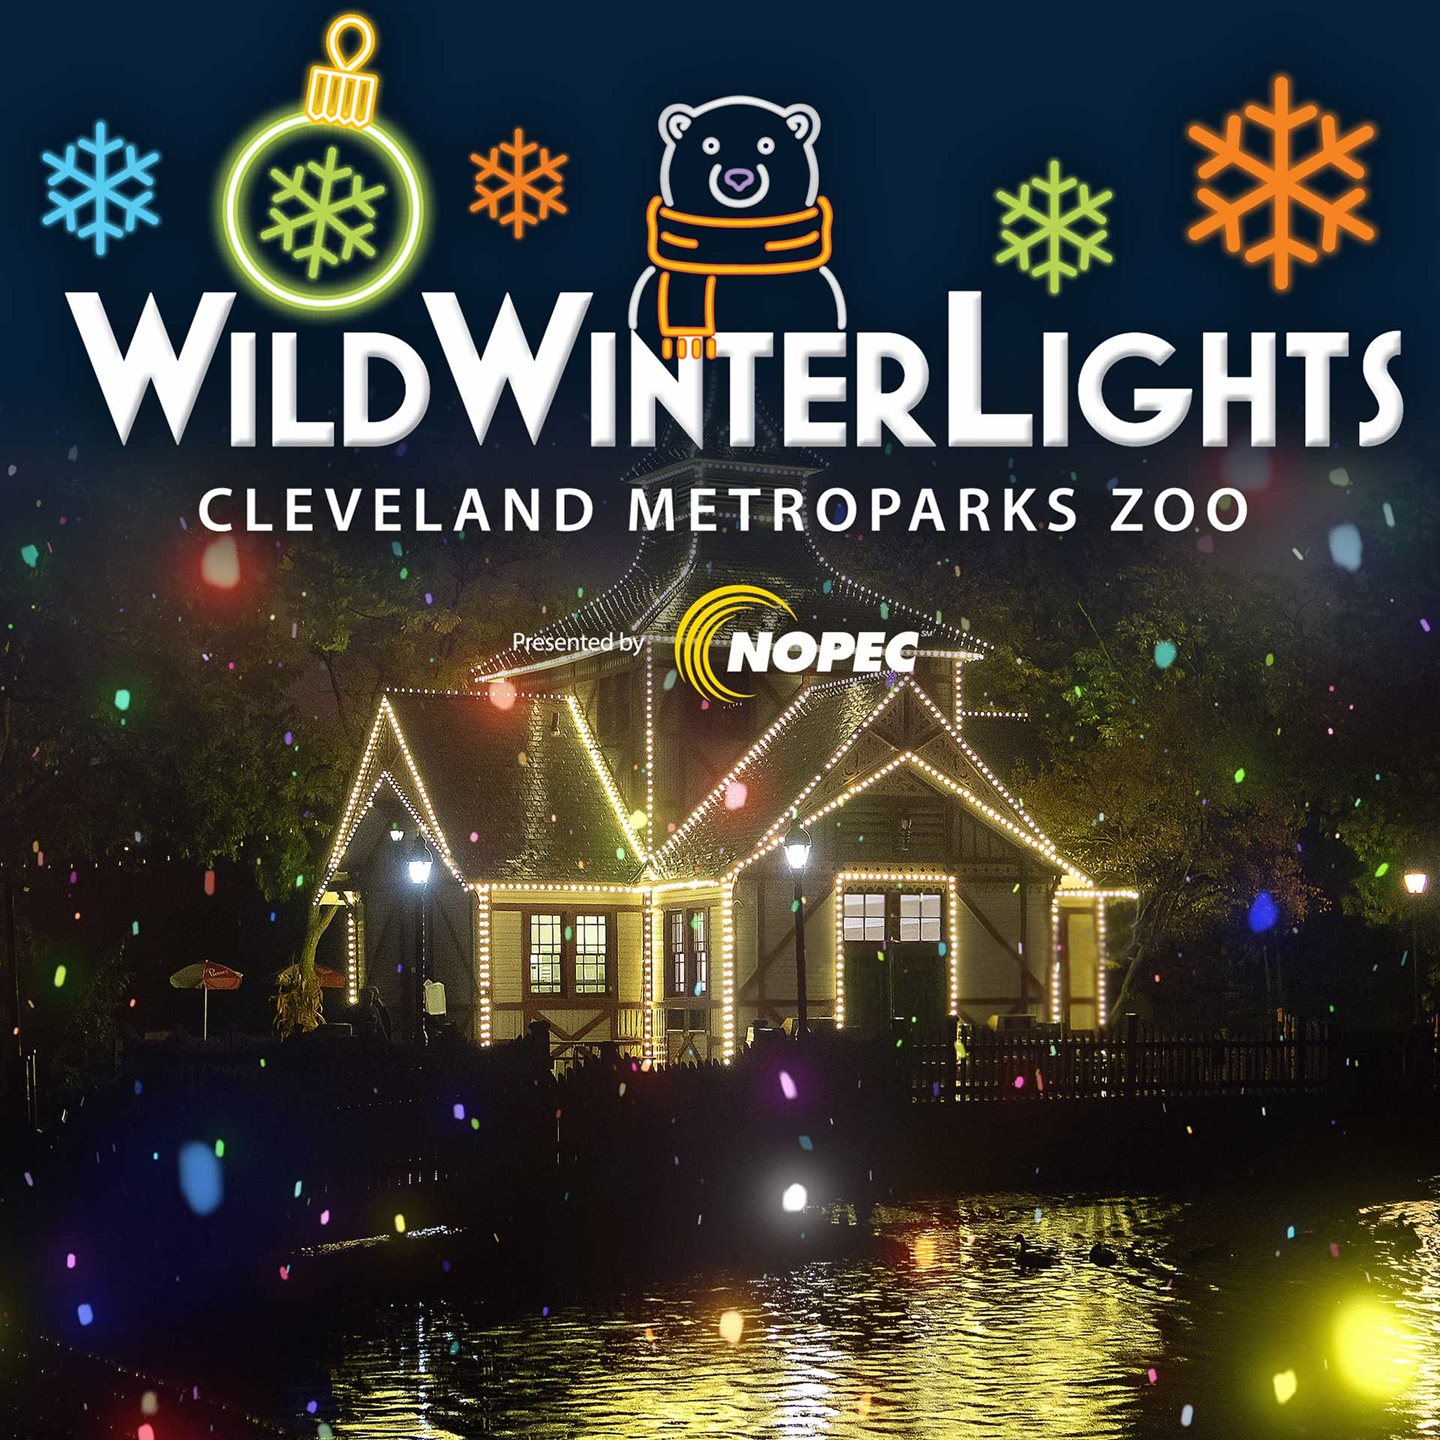 Cleveland Metroparks Zoo Announces Wild Winter Lights